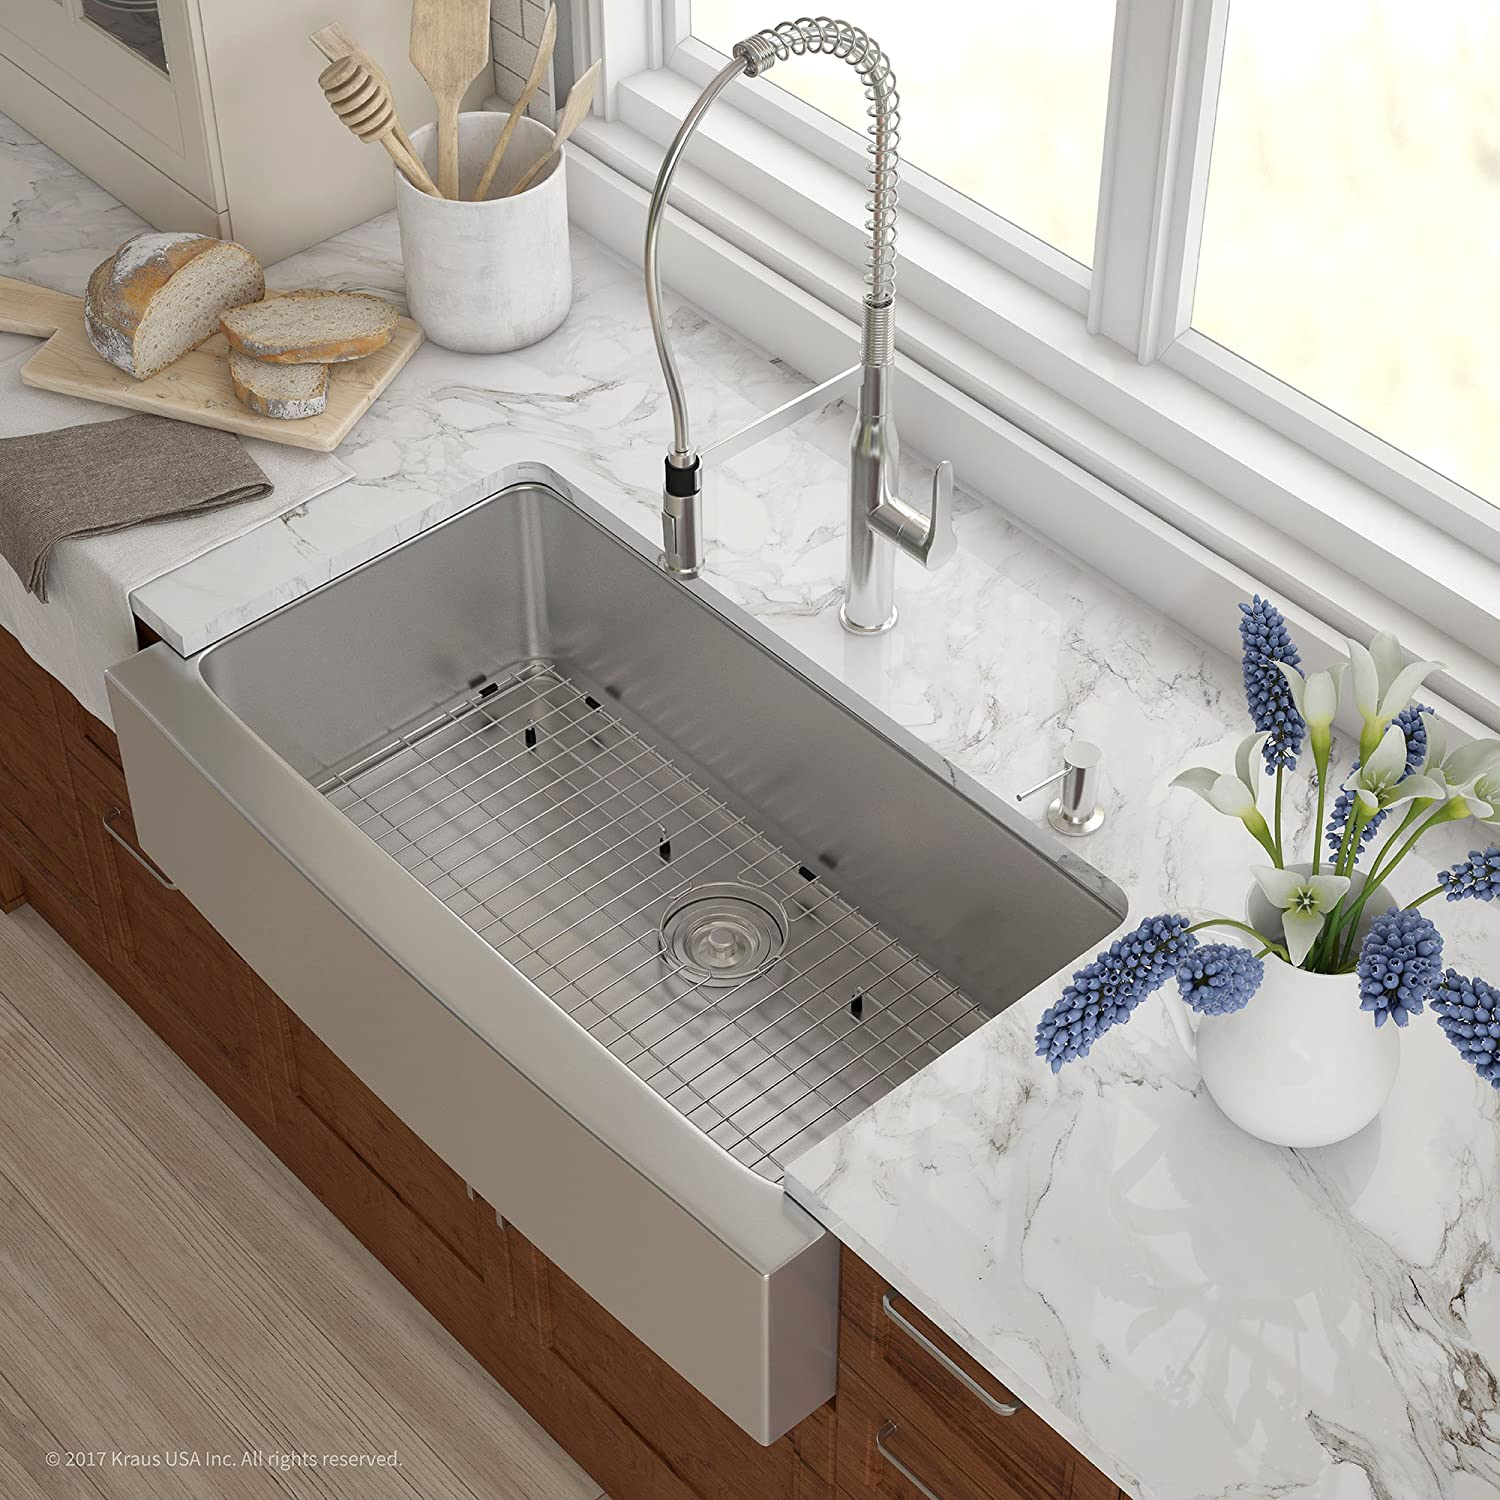 Best Stainless Steel Farmhouse Sink